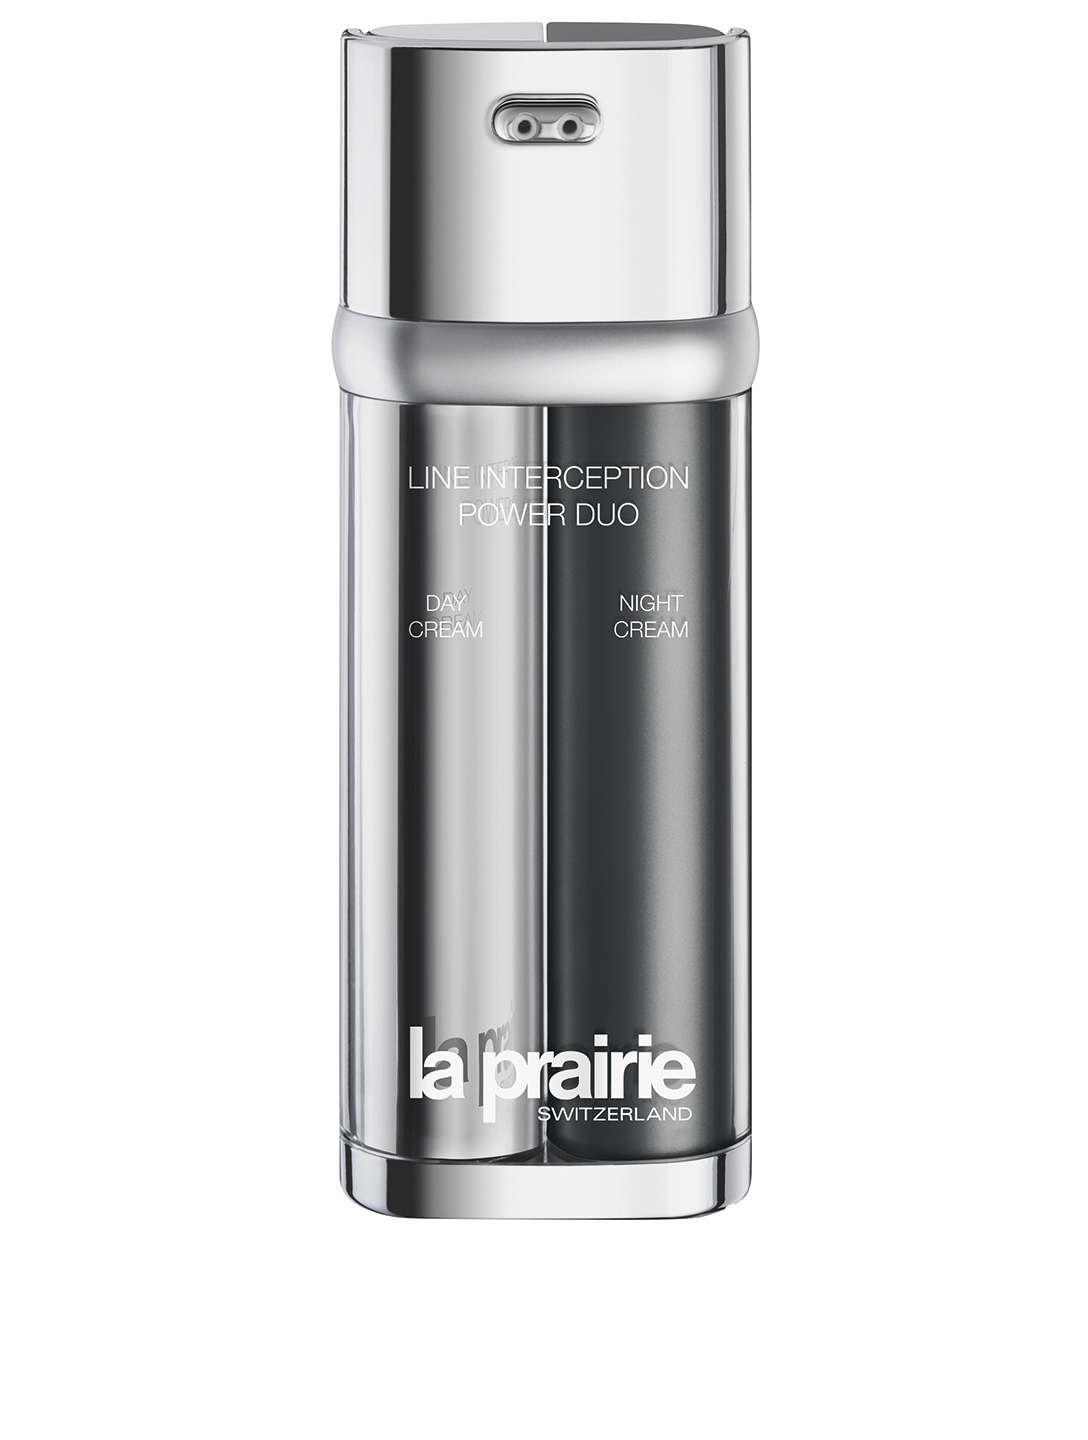 LA PRAIRIE Line Interception Power Duo Beauty